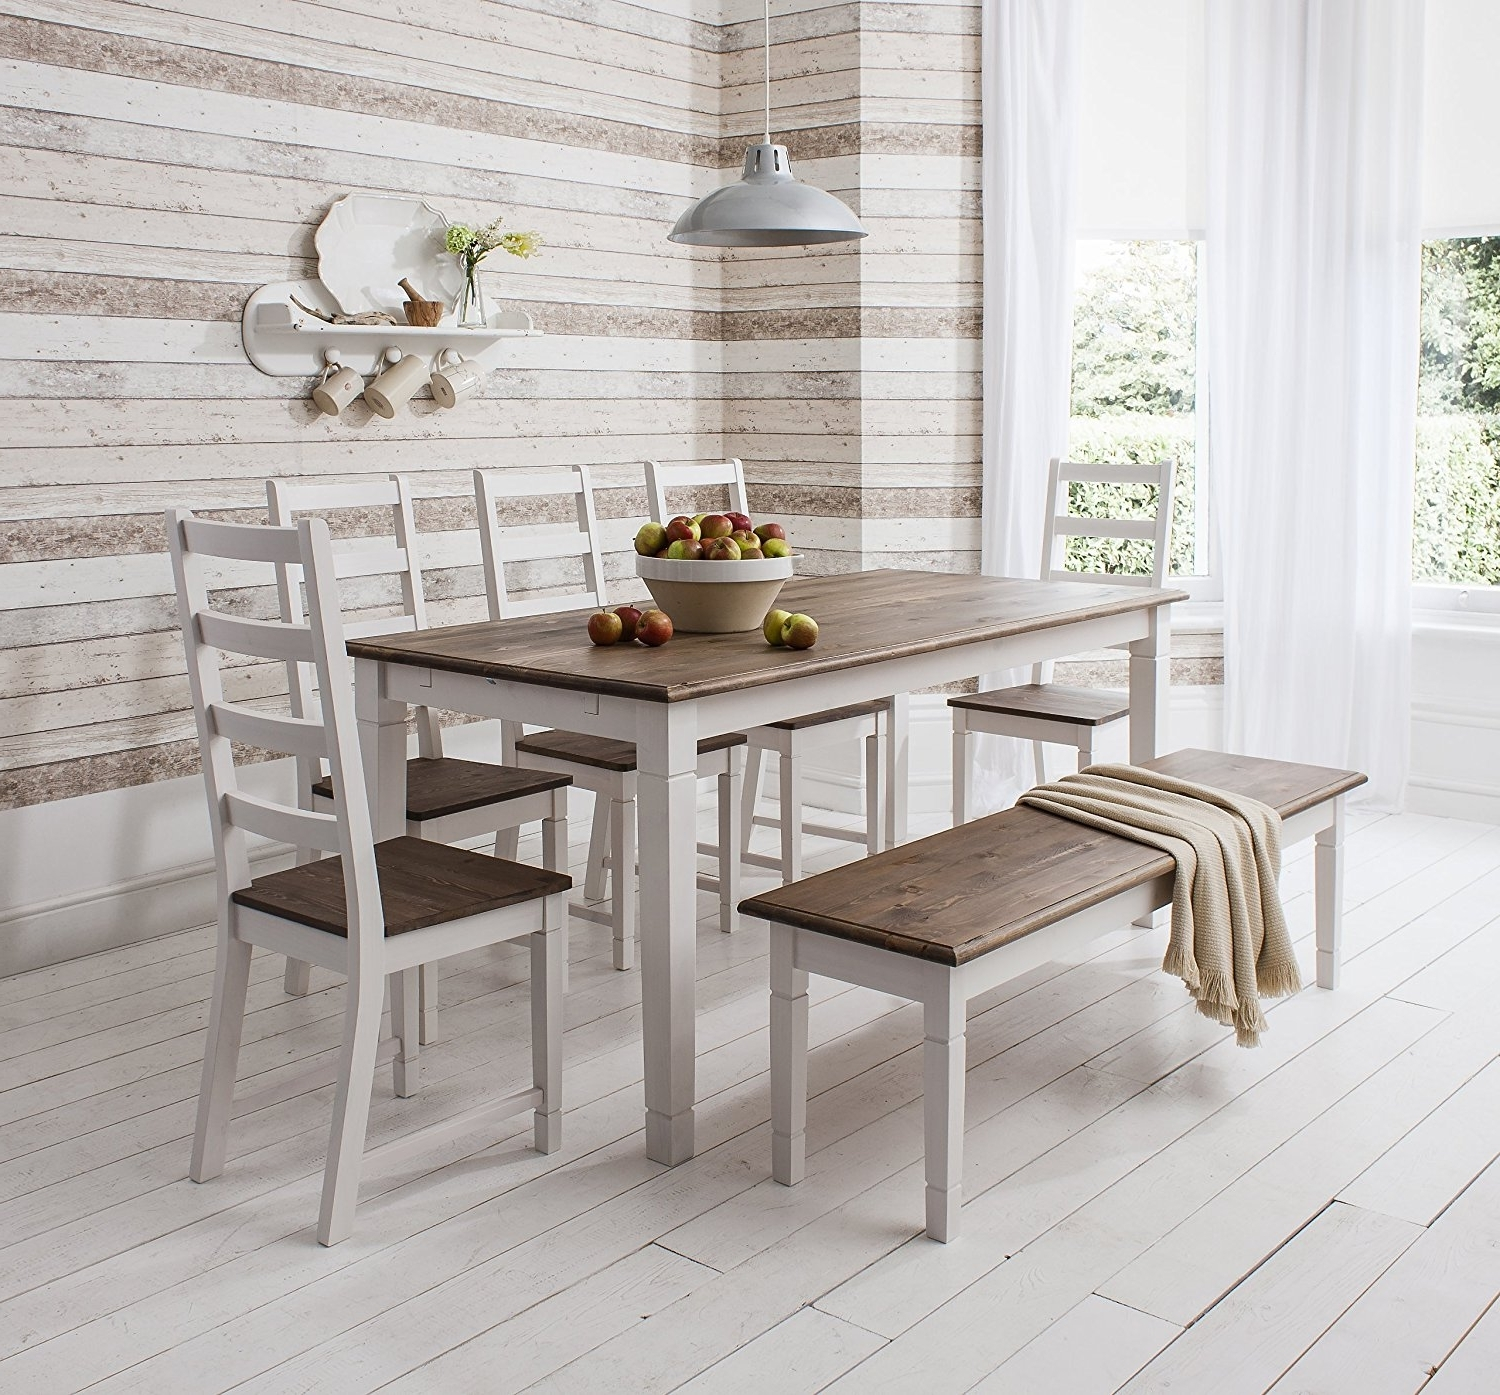 Widely Used Imágenes De White Wooden Dining Room Table And Chairs Intended For Combs 5 Piece 48 Inch Extension Dining Sets With Pearson White Chairs (View 9 of 25)